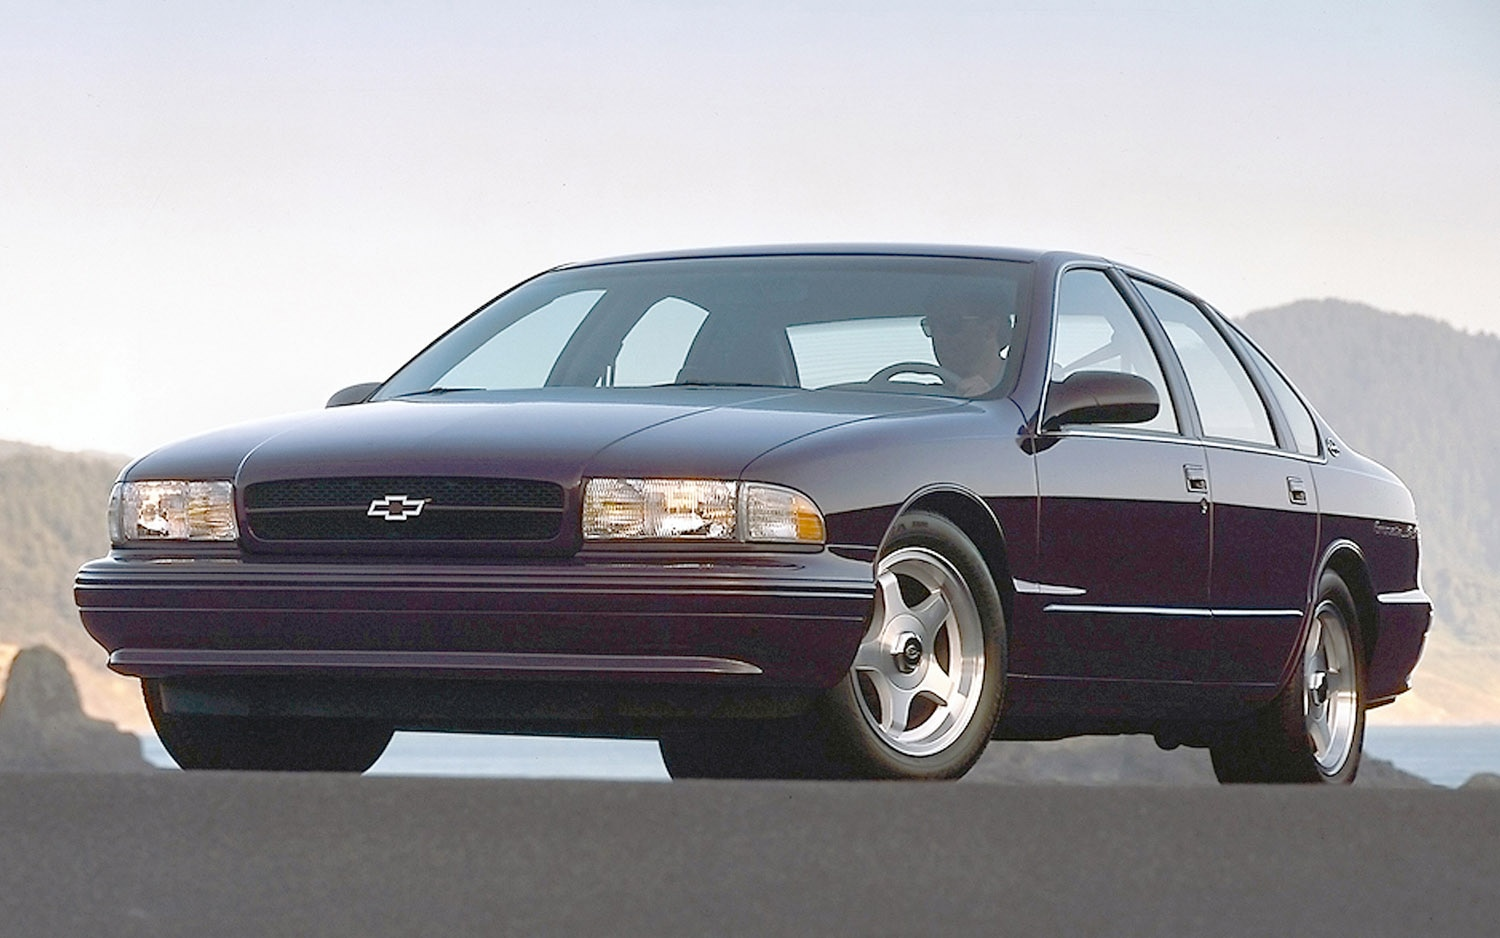 Impala 1990 chevrolet impala : Simply The BeSSt: Our Favorite Chevrolet SS Performance Cars